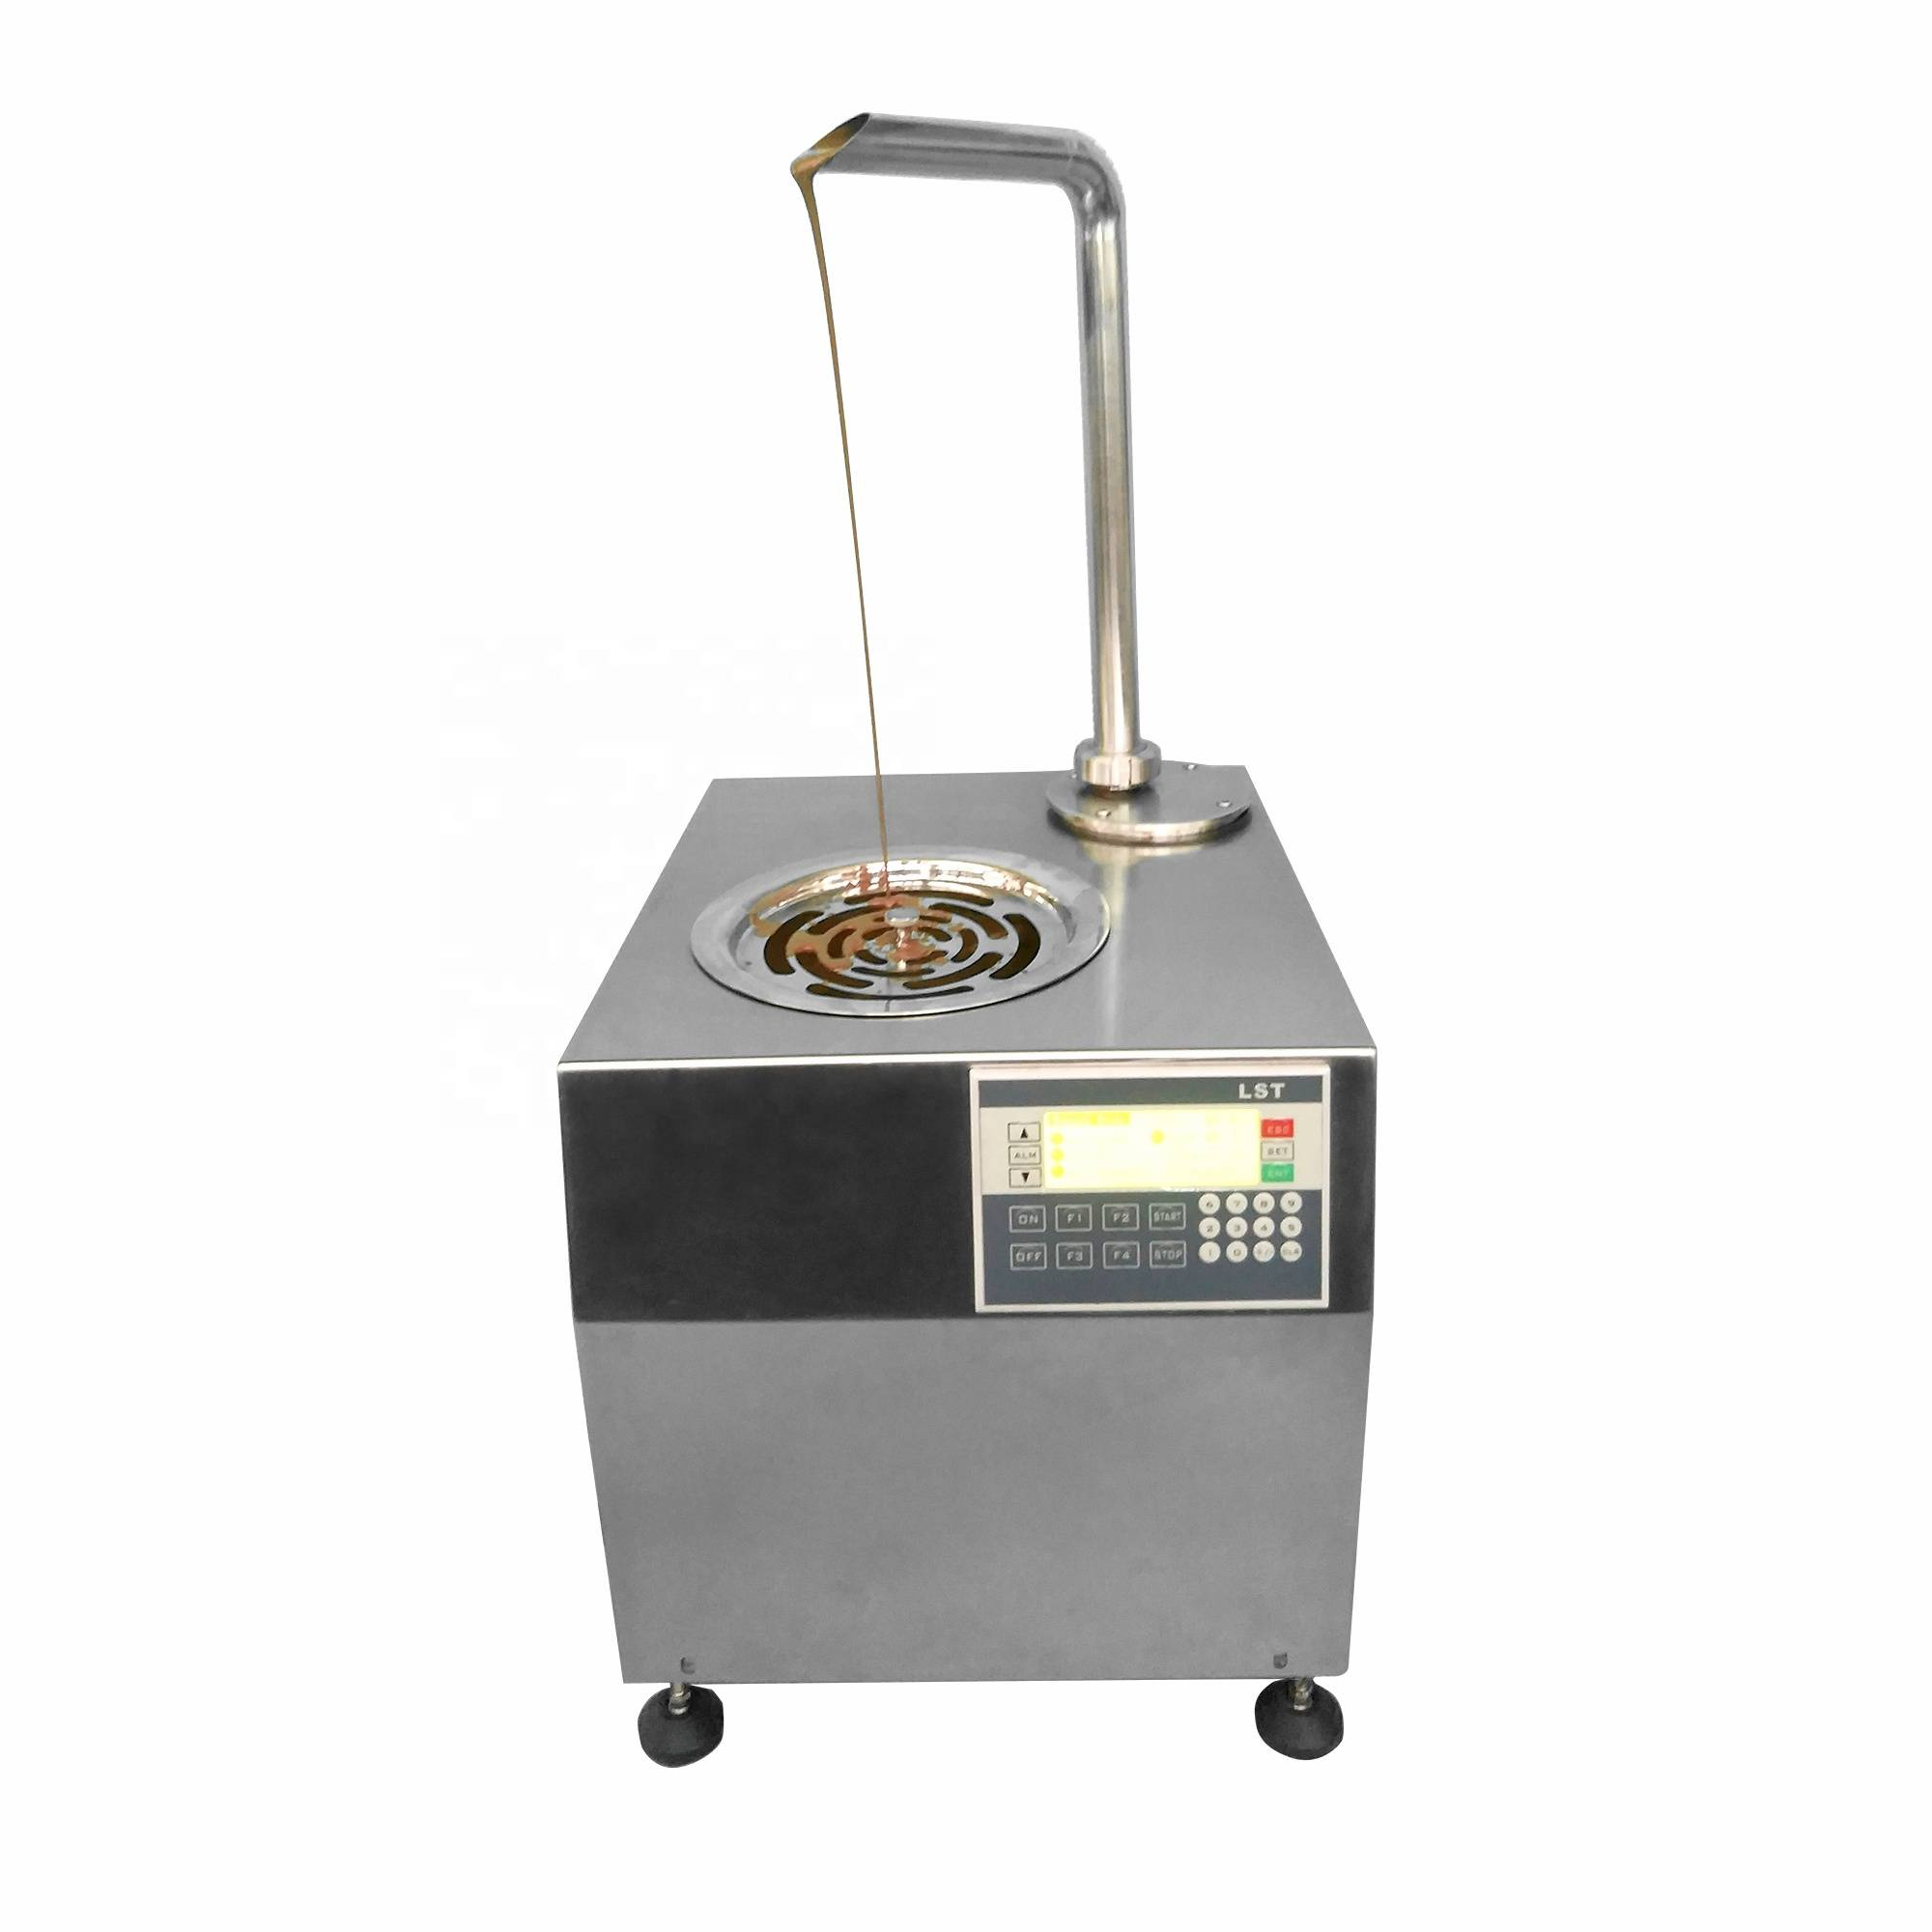 New Design 5.5 L Chocolate Tempering Machine Small Chocolate Tempering Machine Chocolate Dispensing Machine